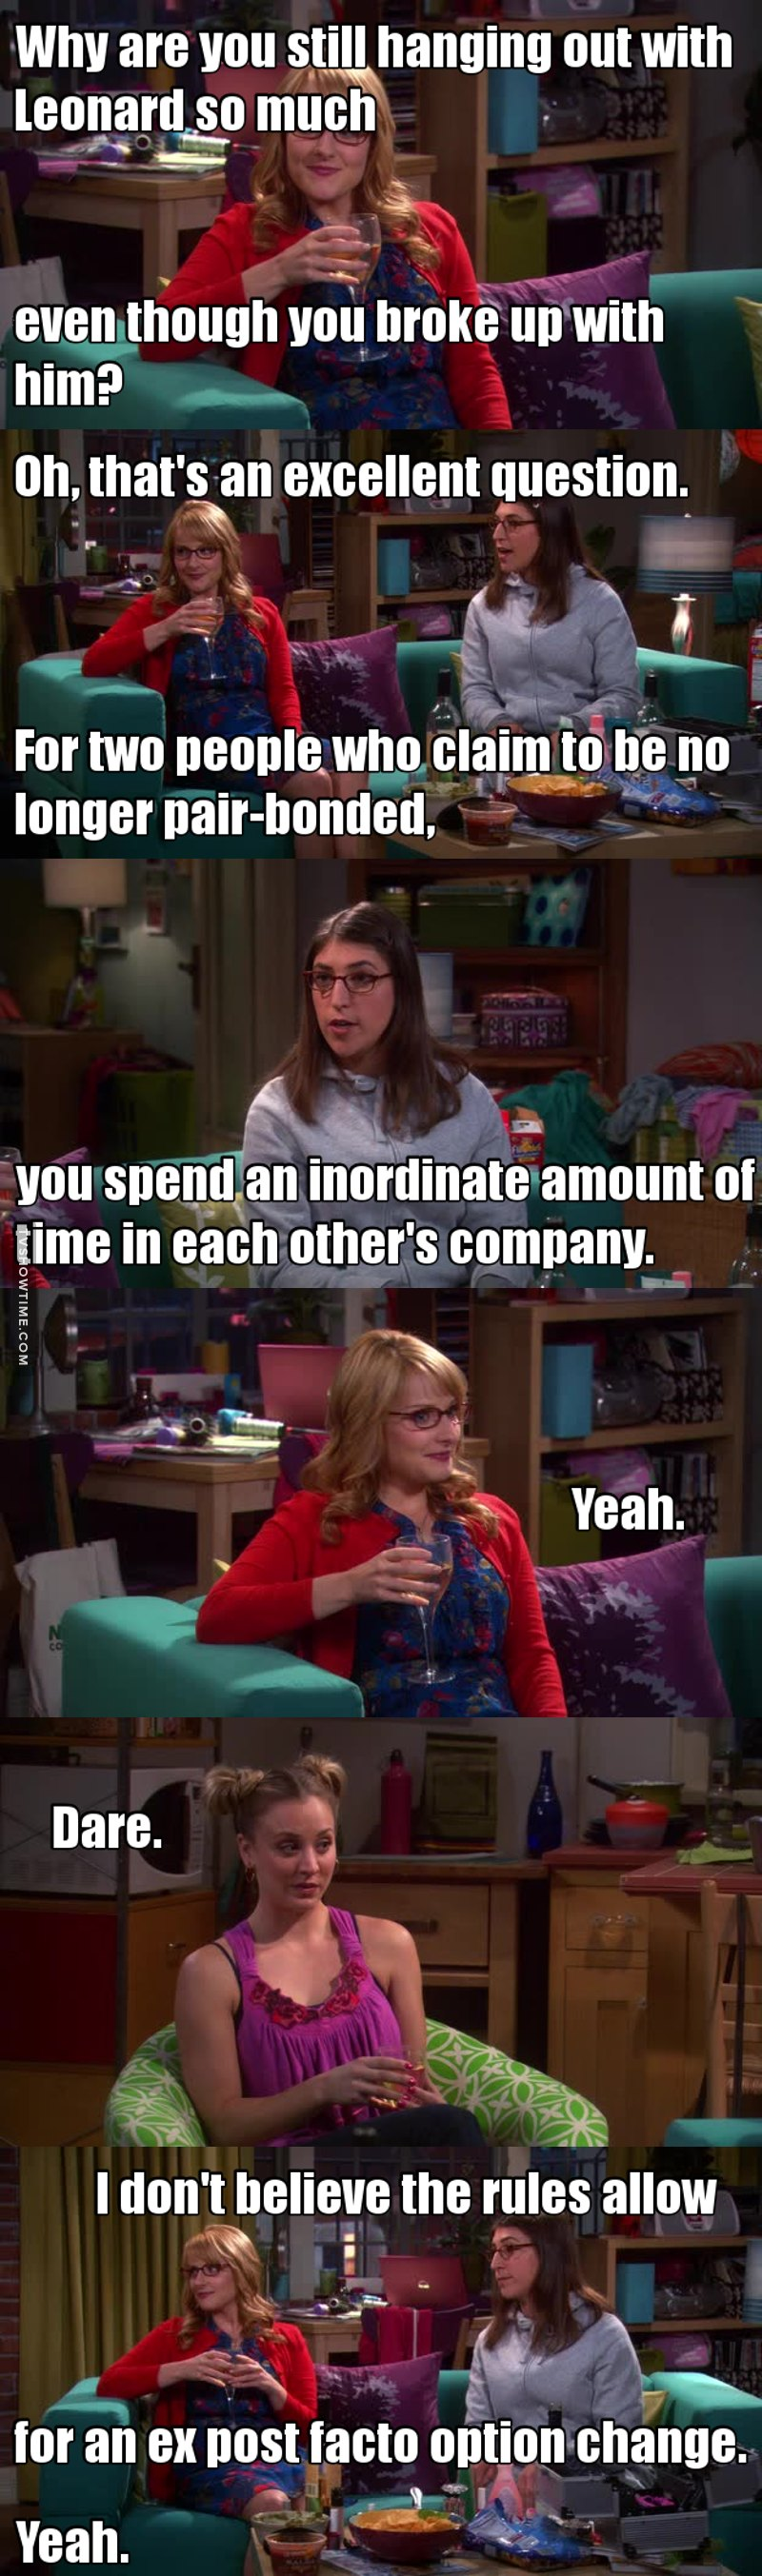 """Just by saying """"yeah"""" Bernadette makes me laugh xD"""